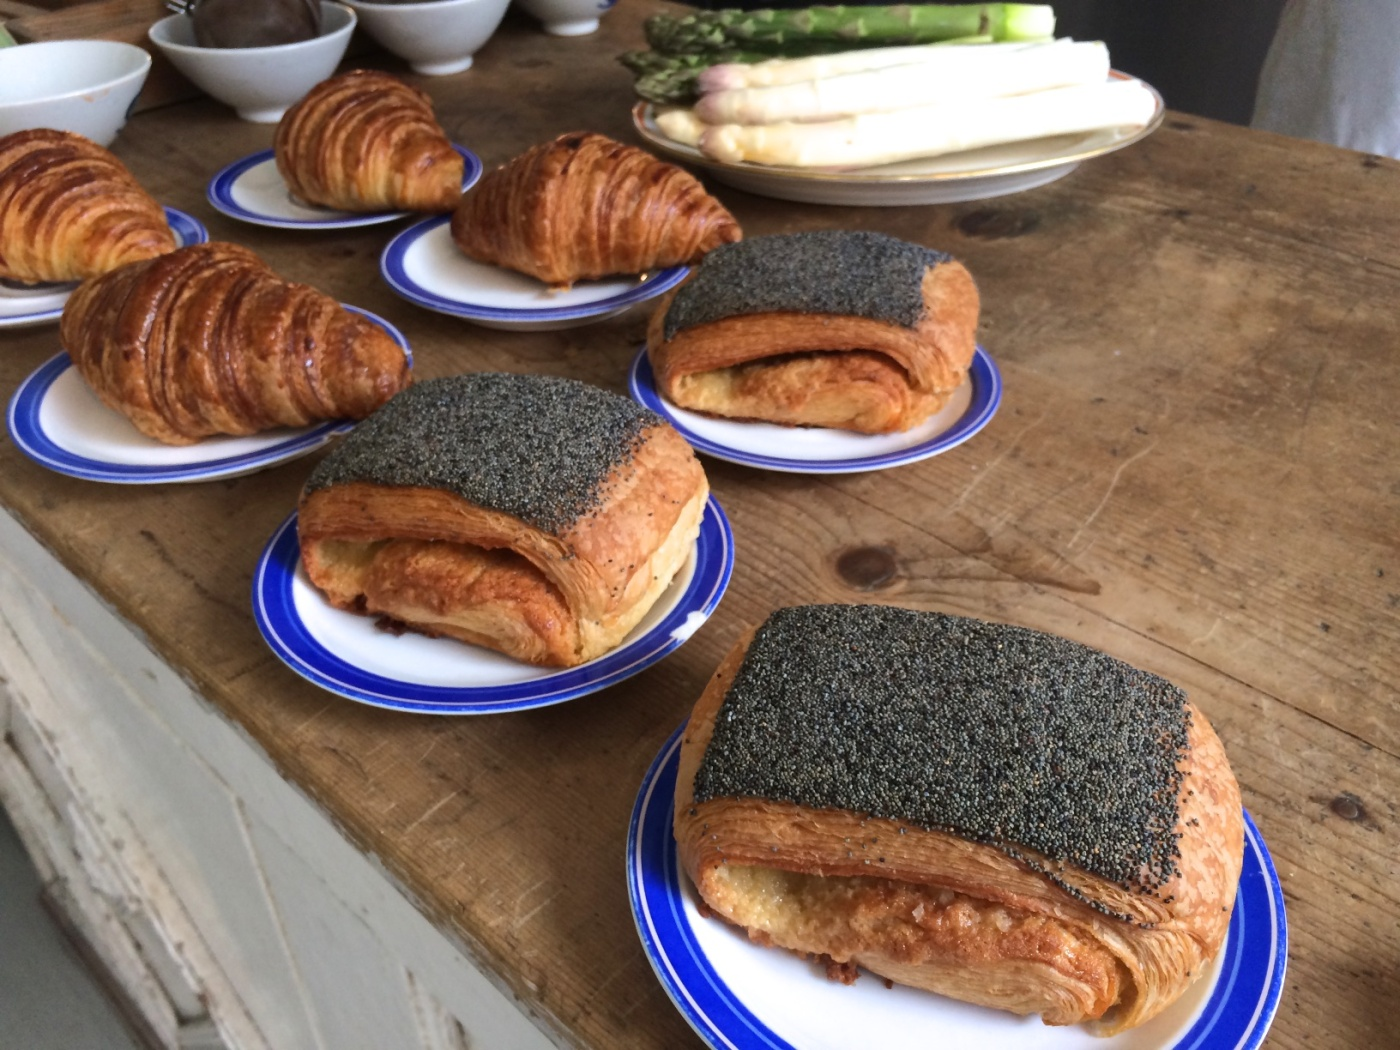 Te Birkes Danish, remonce, poppy seeds and croissants at Atelier September